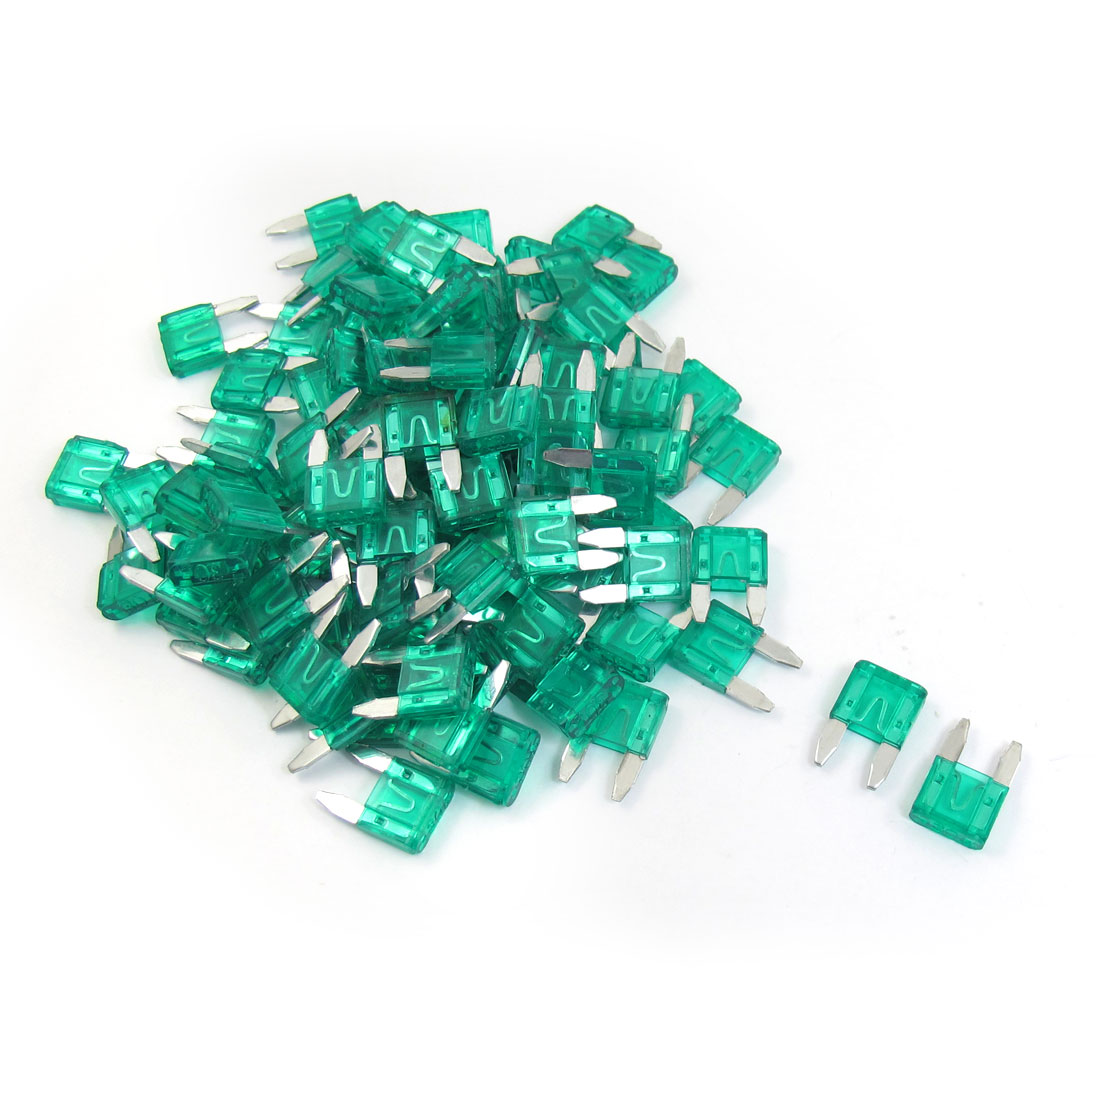 100 Pcs Plastic Housing 30A Vehicle Car Auto Blade Fuses Green